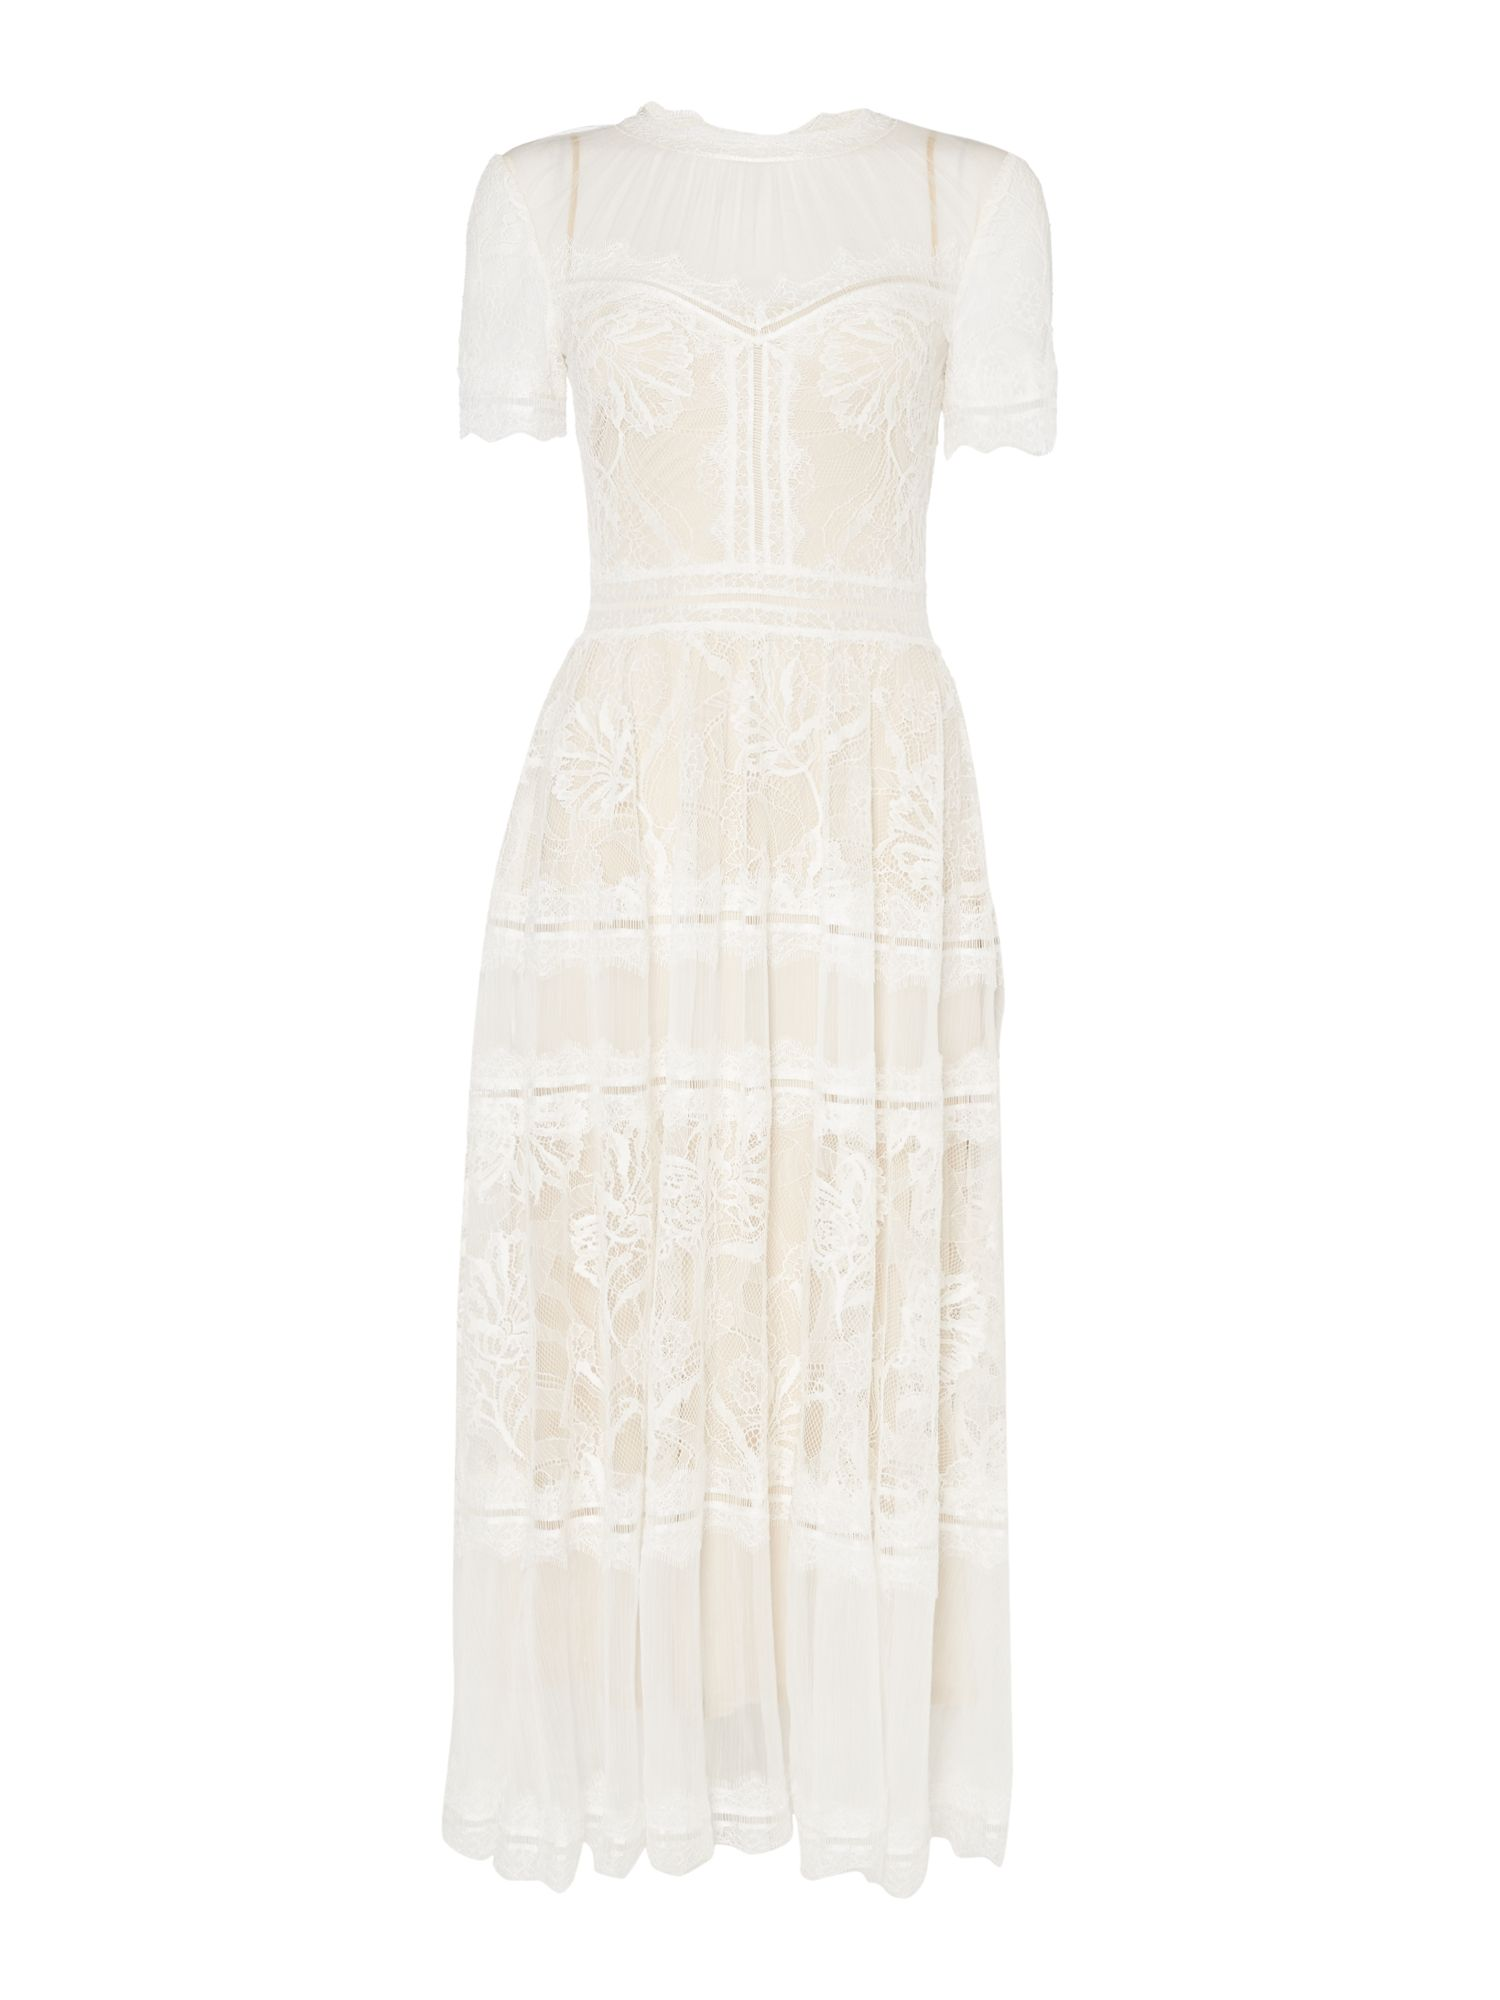 Tadashi Shoji Midi short sleeved lace tea dress, Cream